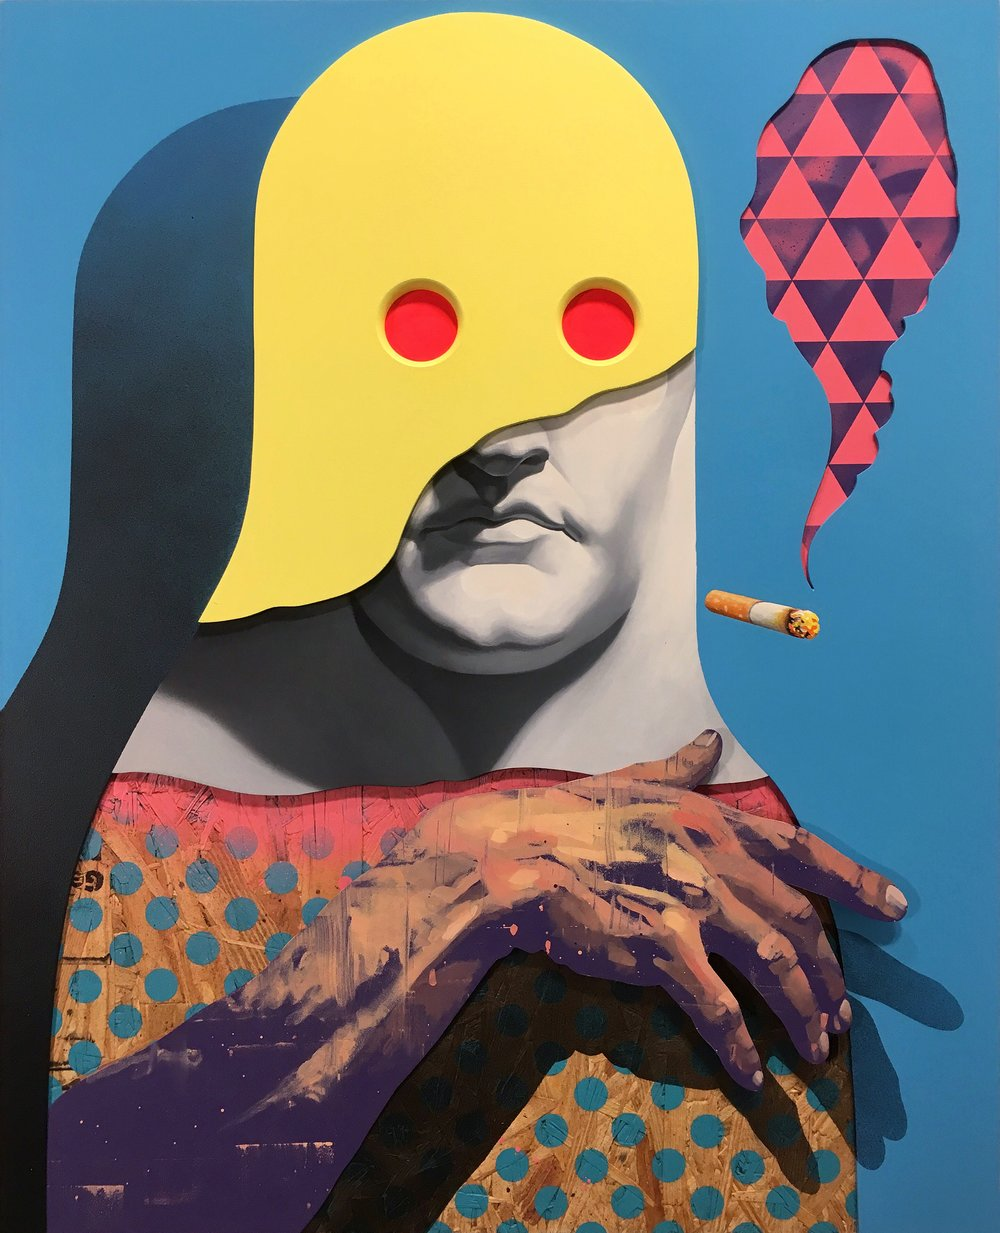 Dream Slayer by Michael Reeder Oil, Aerosol, Acrylic, Enamel and Plastic on Assembled Wood Panel. 24 Inches x 30 Inches. 2017.